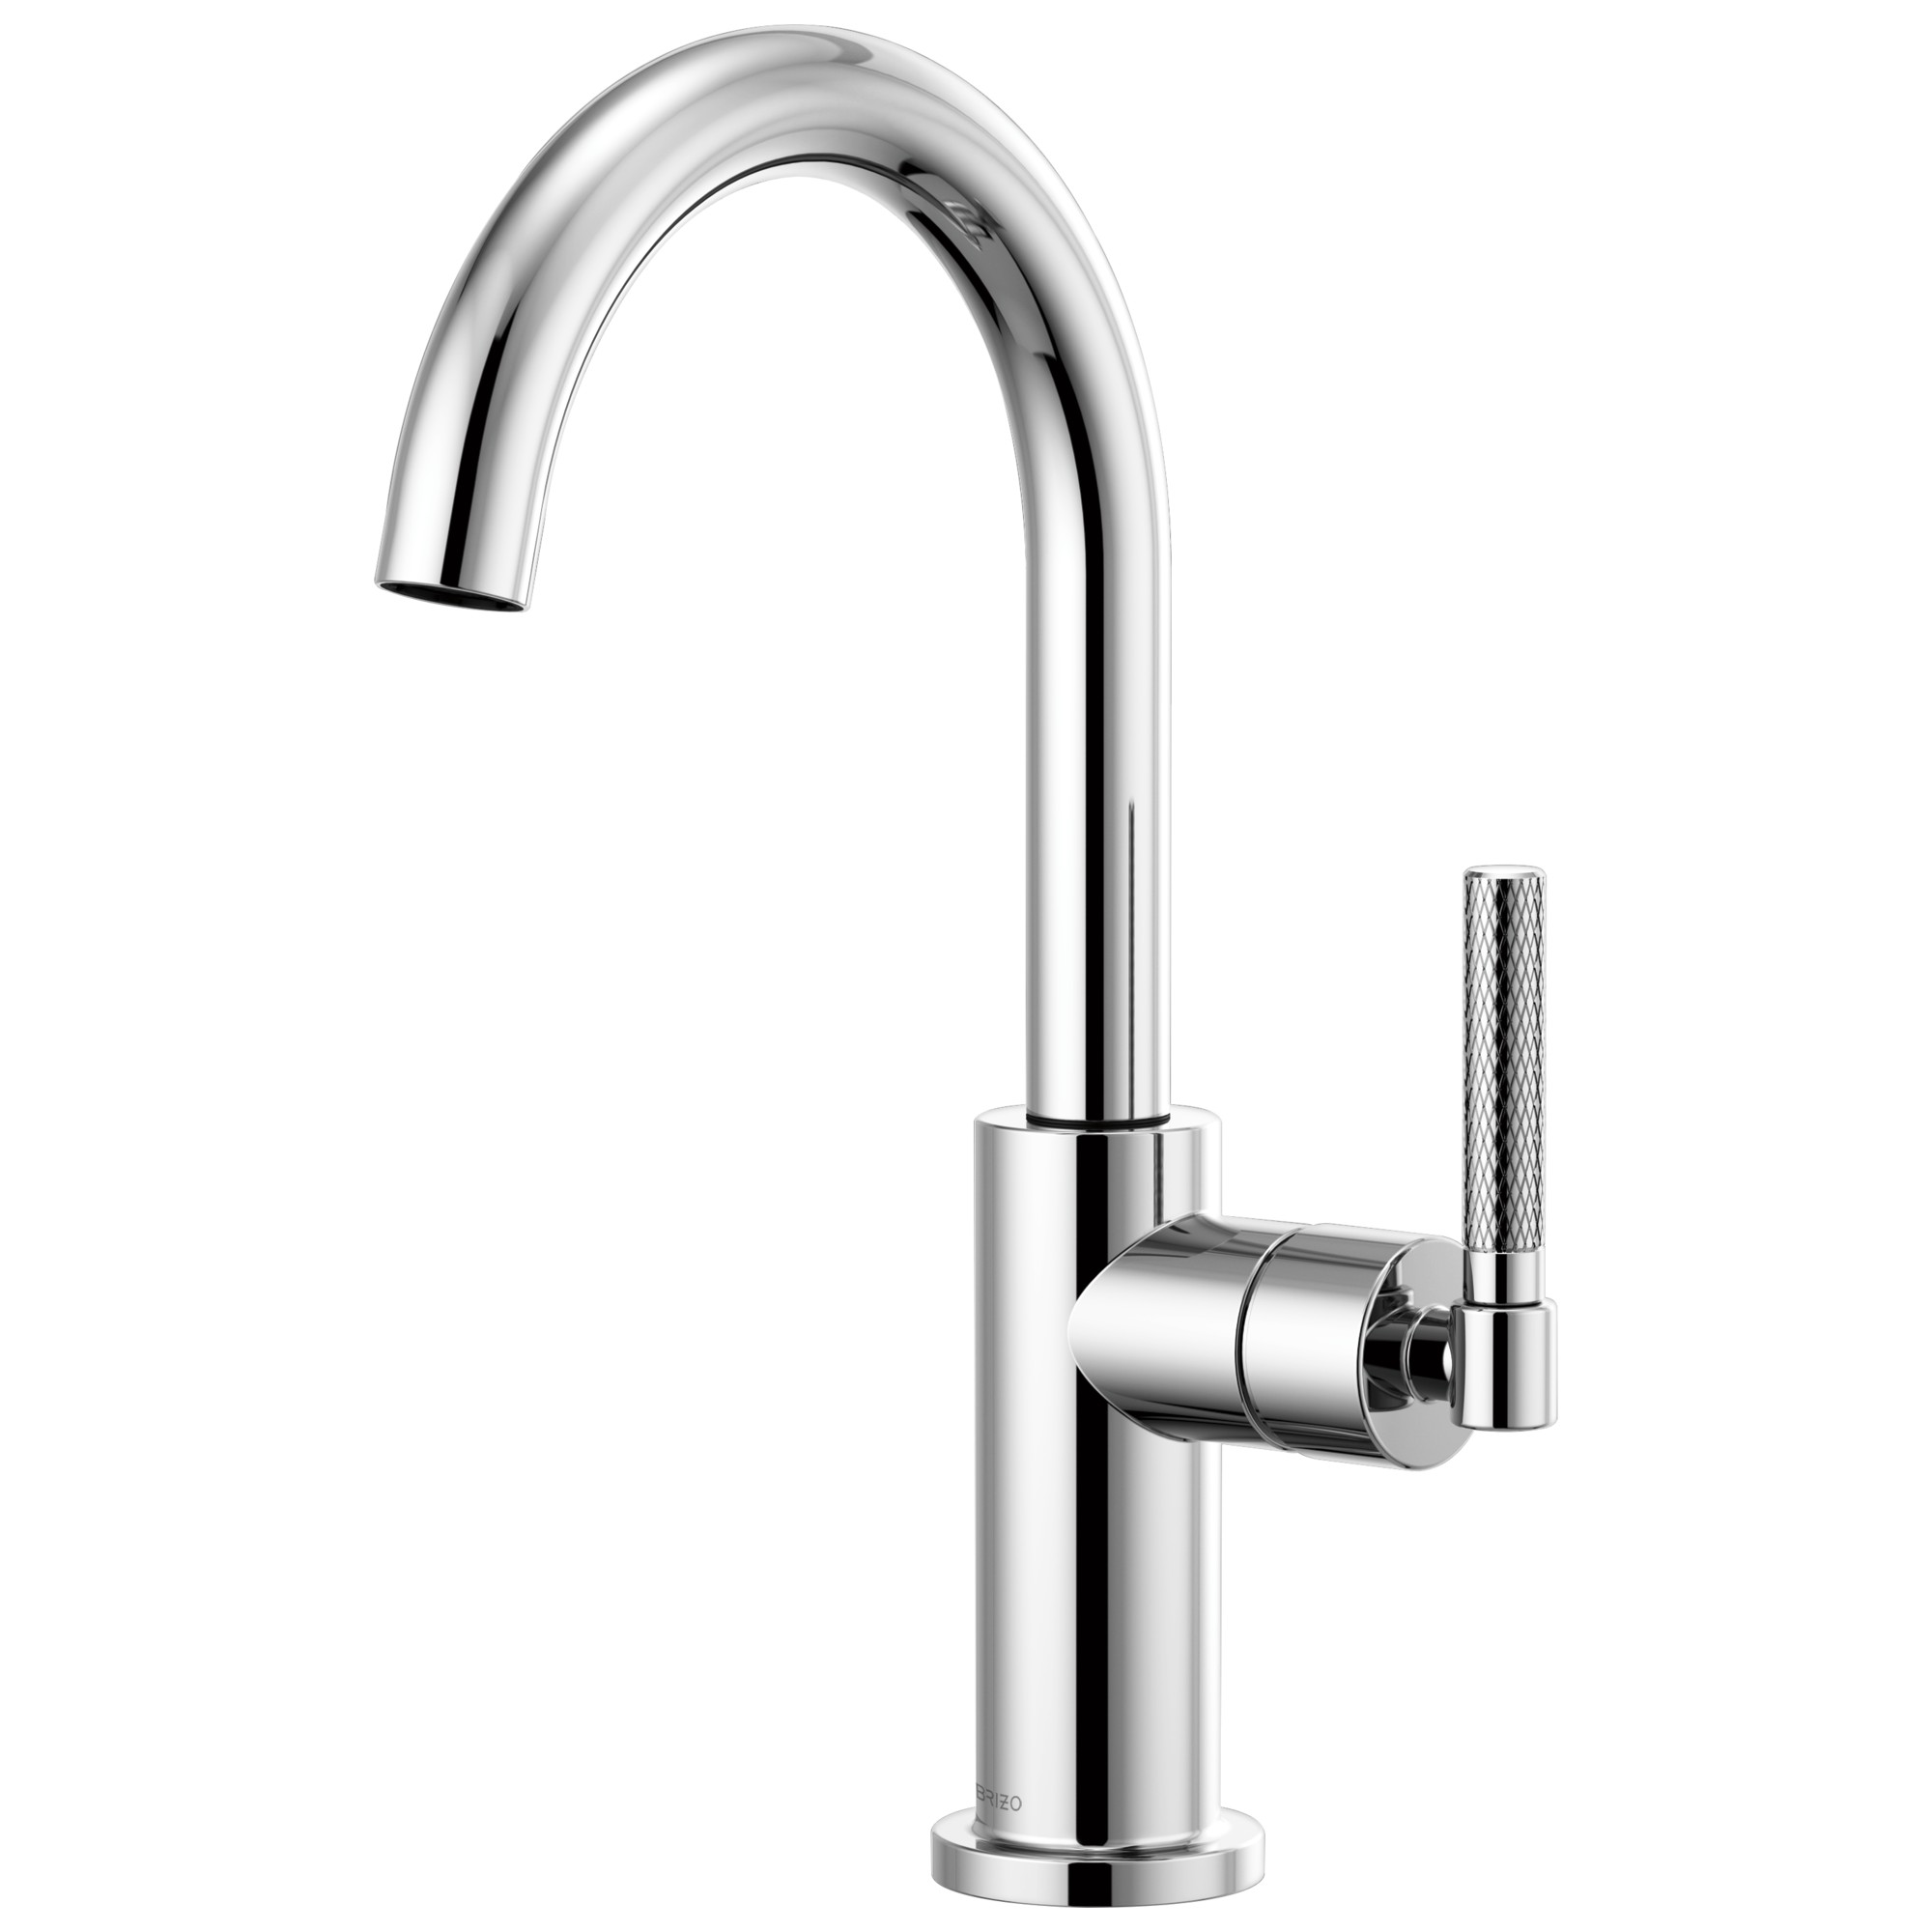 Brizo 61043LF-PC Litze Bar Faucet with Arc Spout and Knurled Handle - Chrome